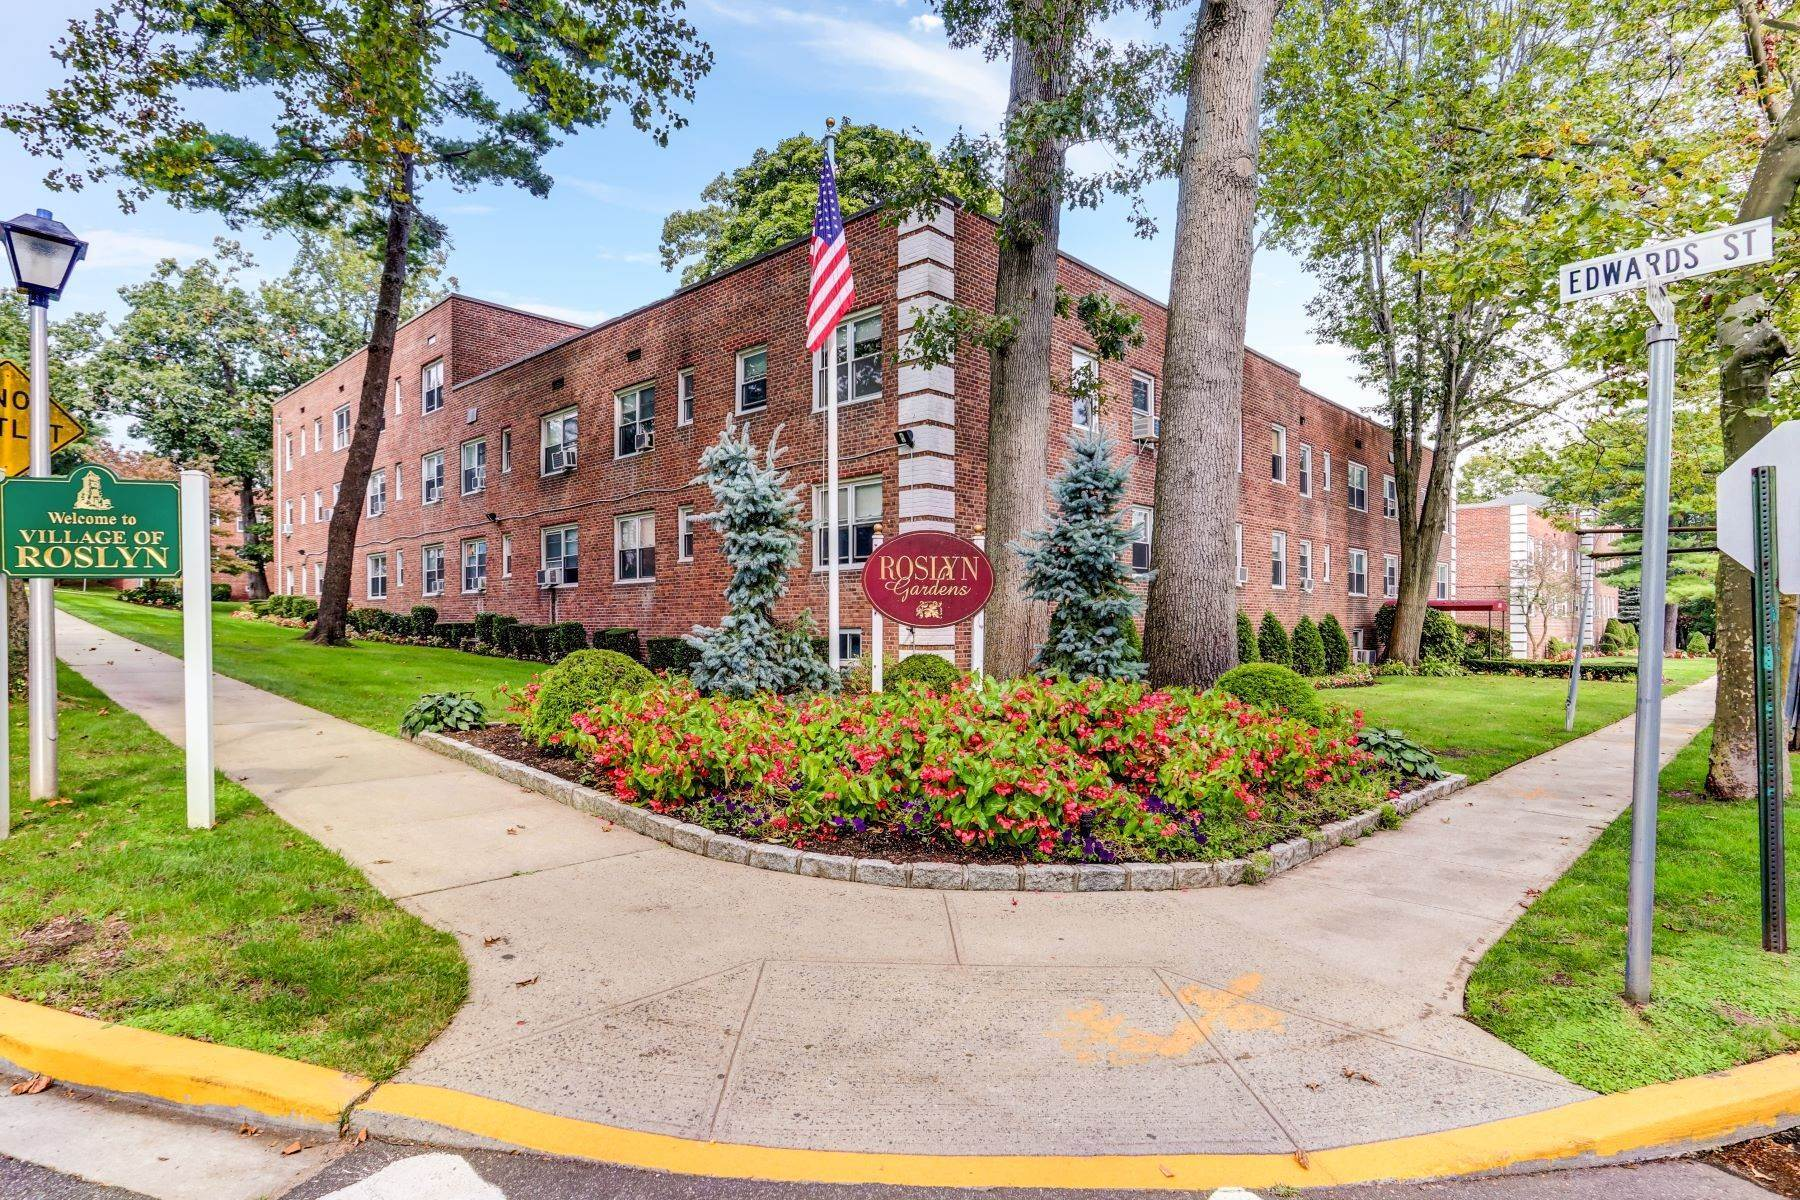 Co-op Properties for Sale at 97 Edwards Street, Roslyn Heights, Ny, 11577 97 Edwards Street , 2C Roslyn Heights, New York 11577 United States